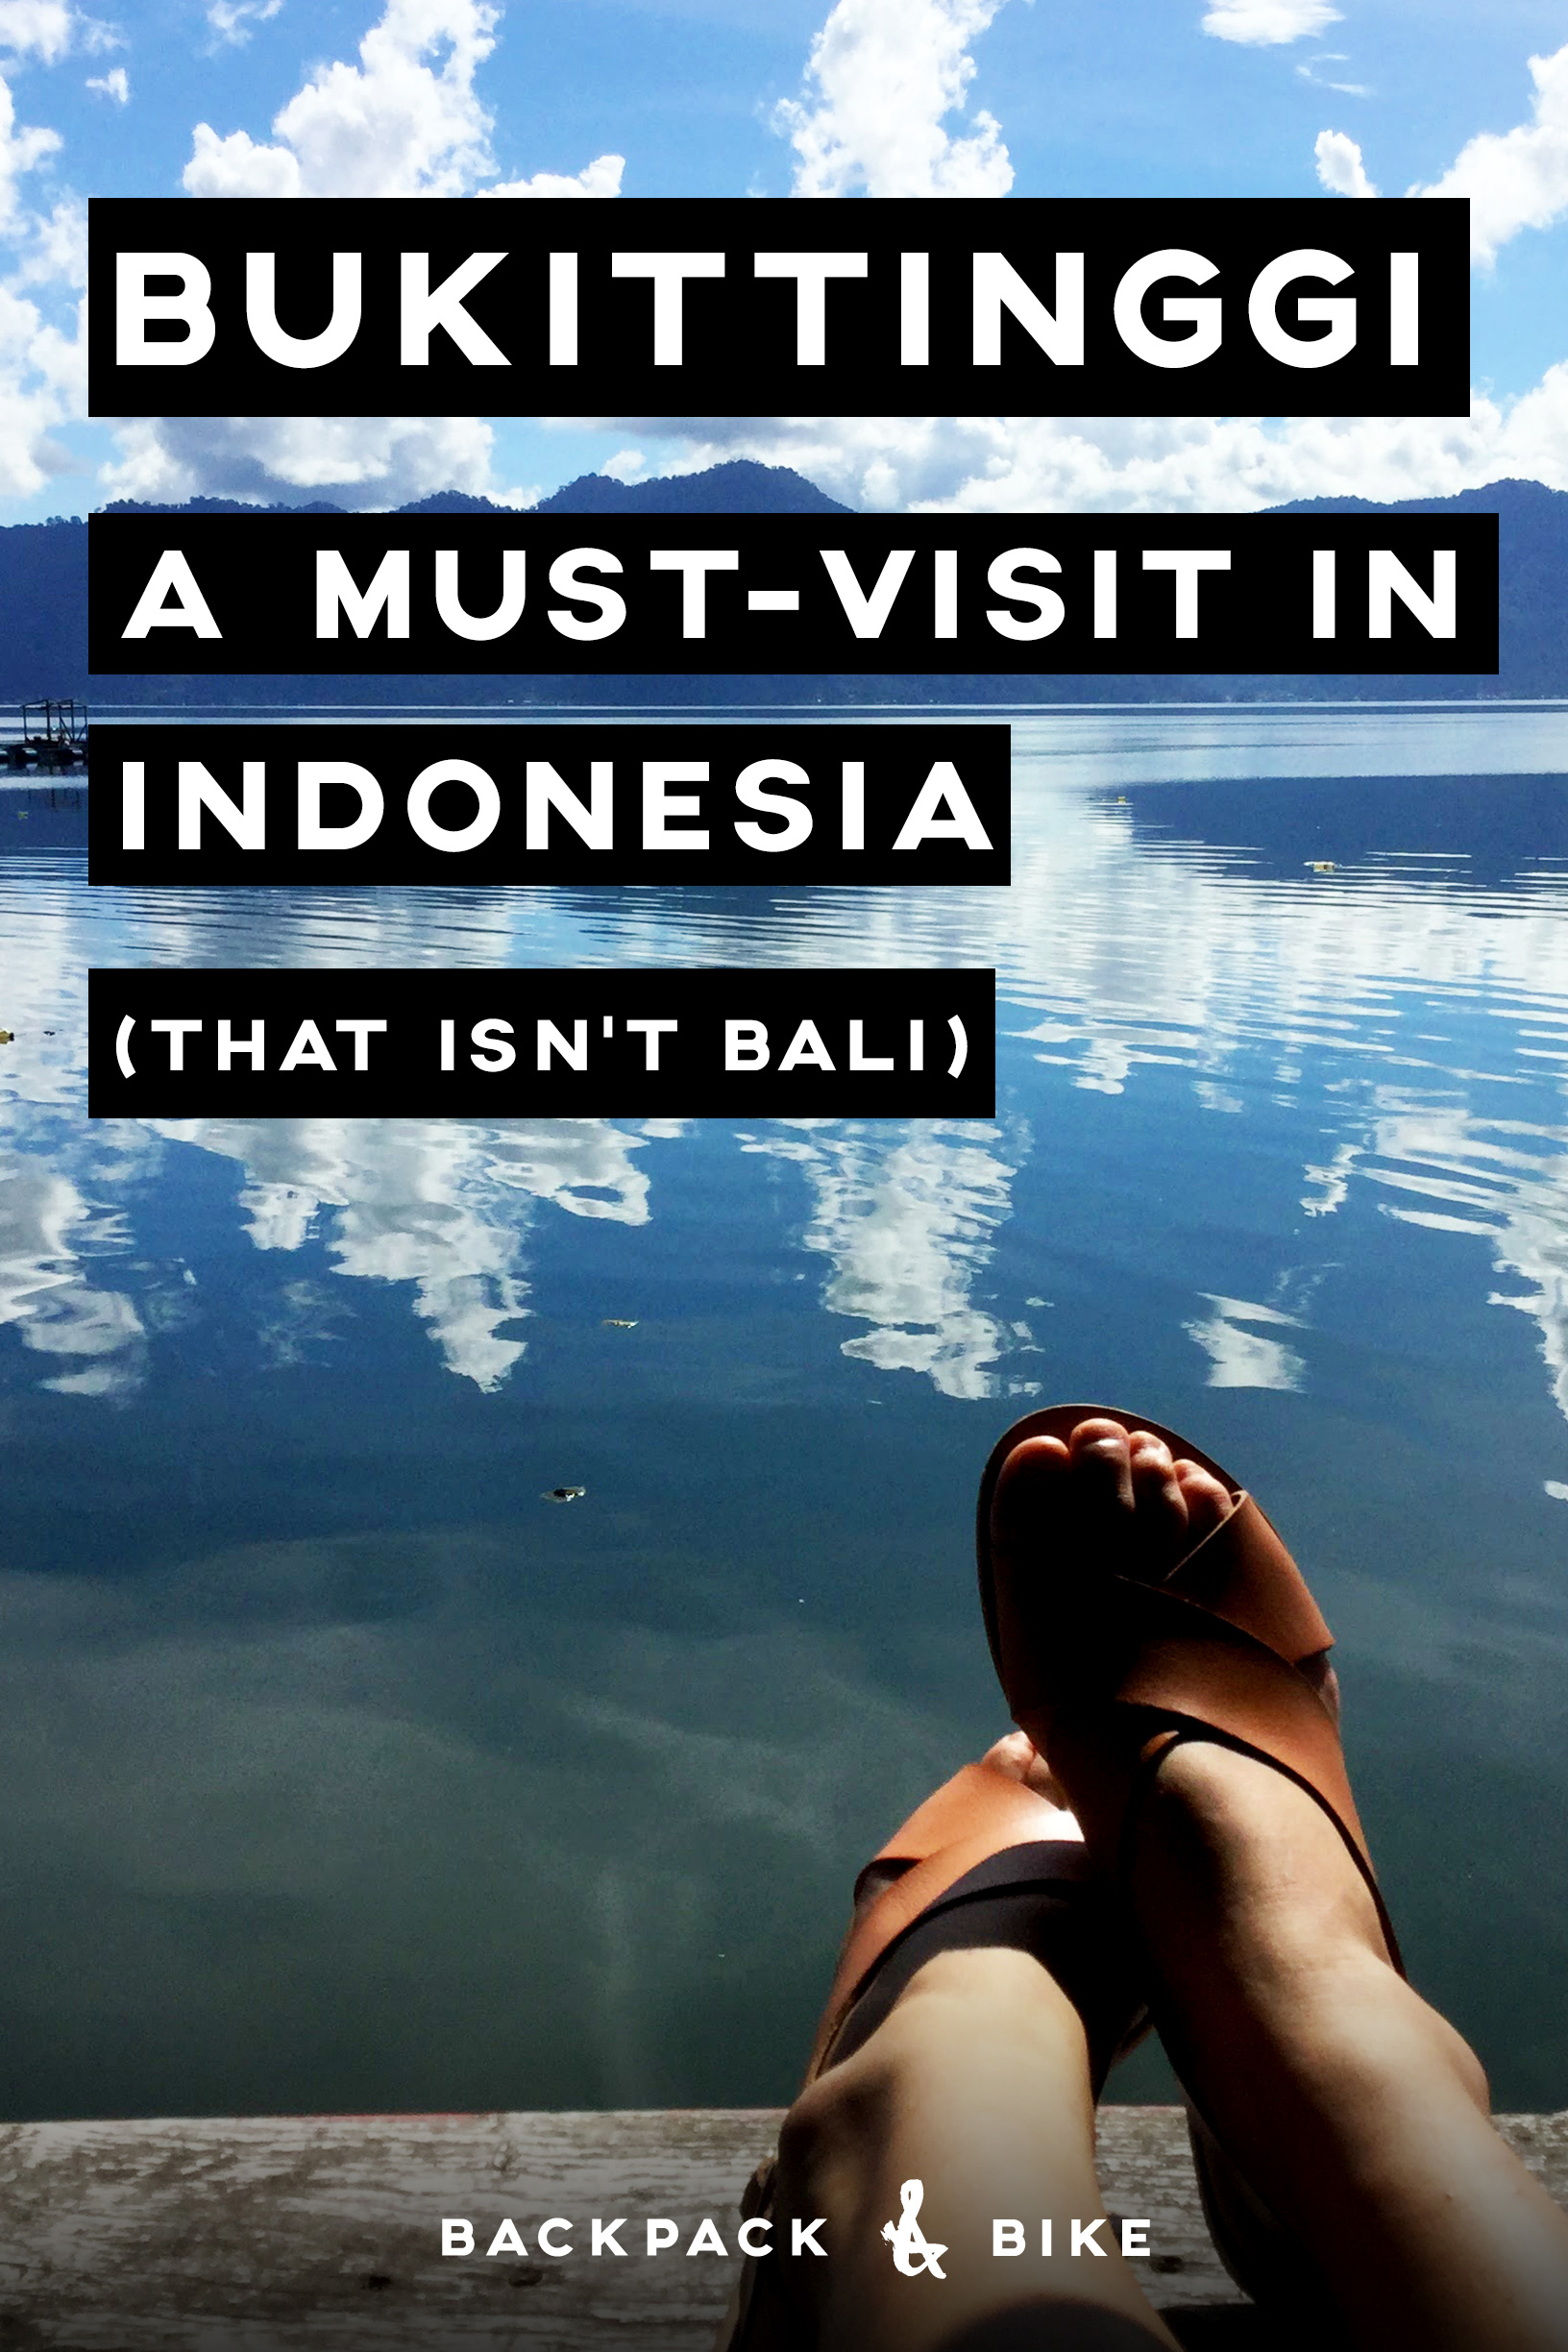 Bukittinggi | A must-visit in indonesia (that isn't bali) | Bukittinggi is an under visited gem that's overshadowed by its eastern sibling, Bali. Don't be fooled, the mountains have just as much to offer as the islands.